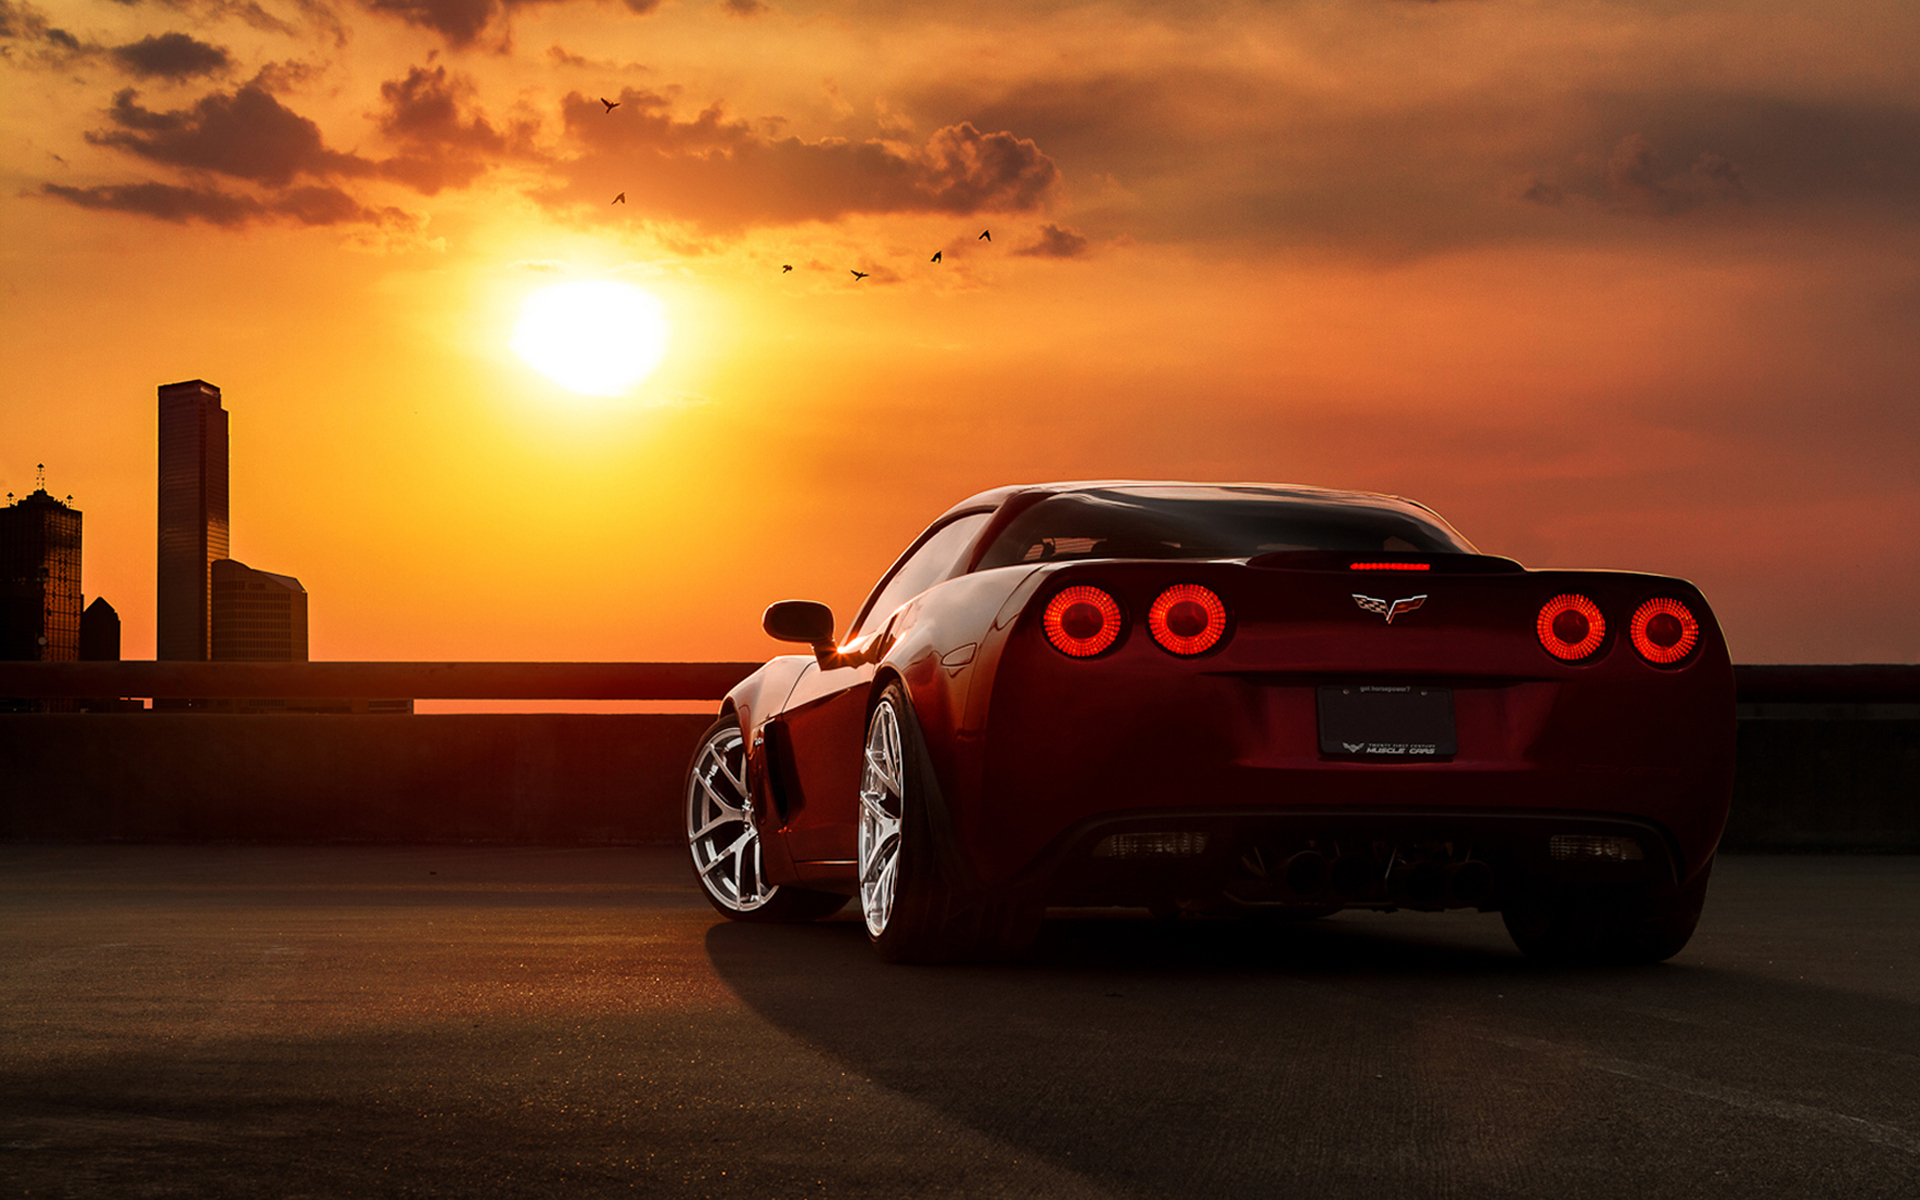 Corvette New Awesome Hd Desktop Wallpapers All Hd Wallpapers